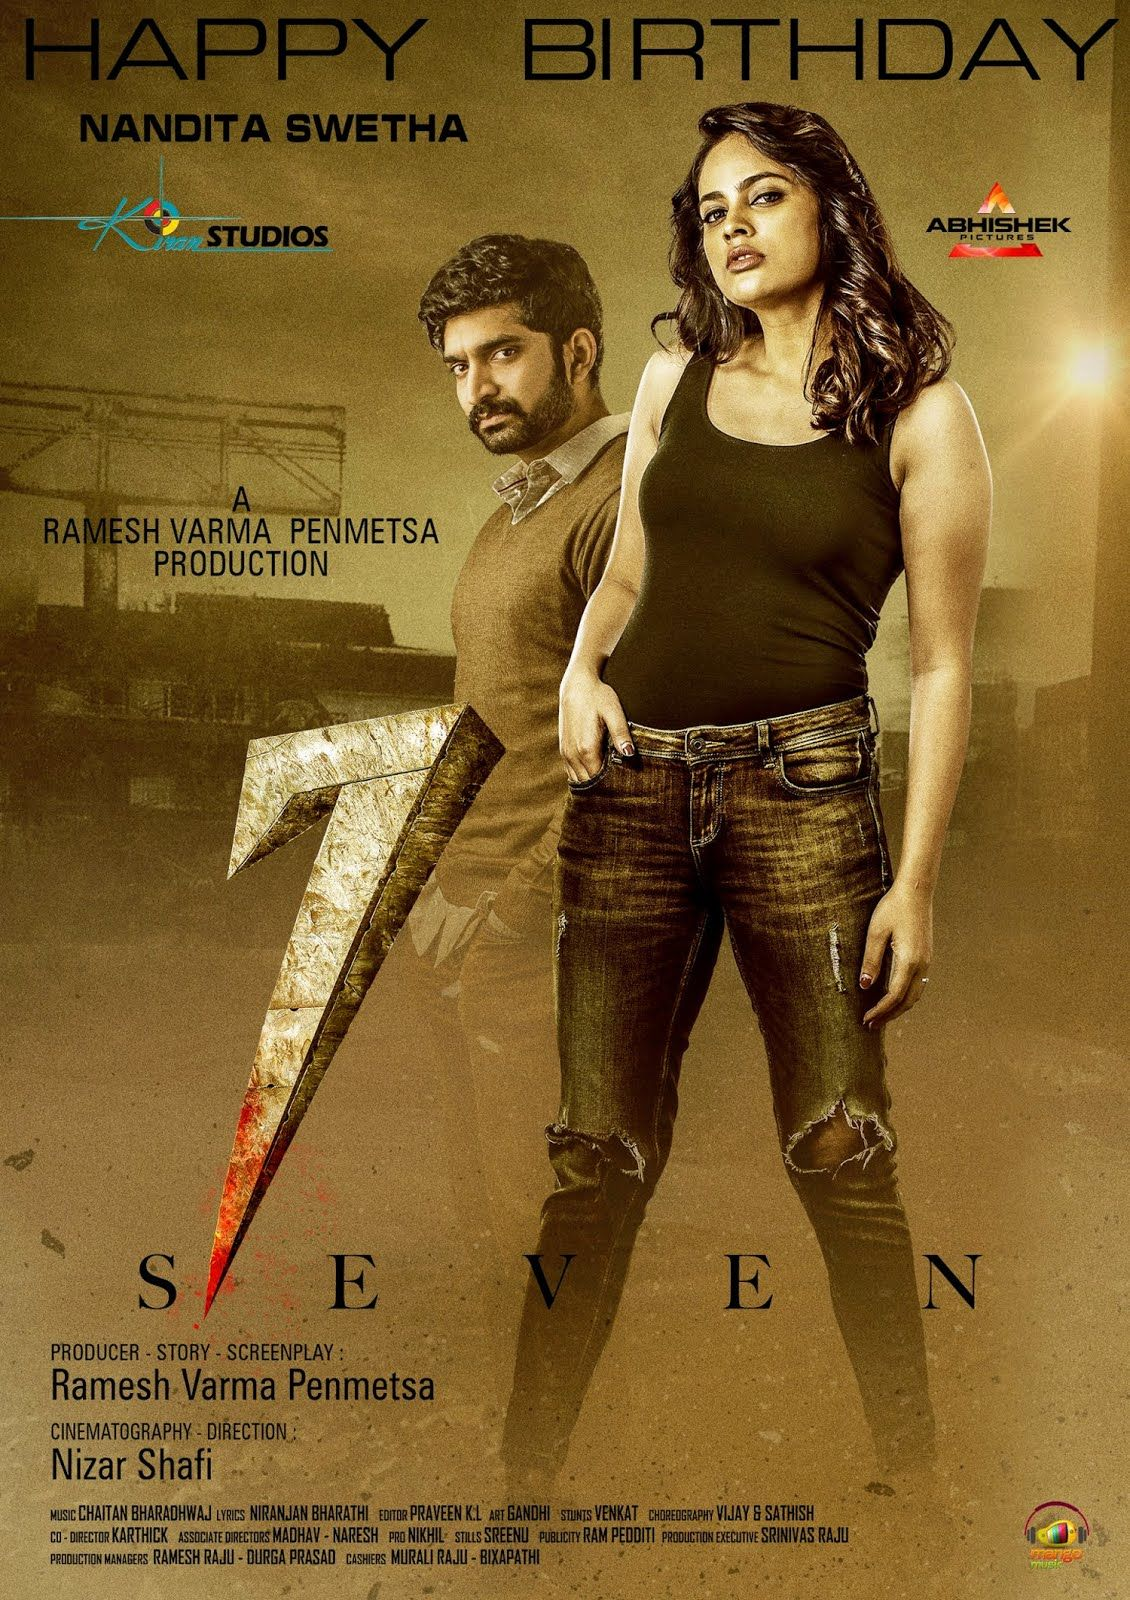 7 (Seven) 2020 Hindi Dubbed 480p HDRip 400MB MKV in 2020